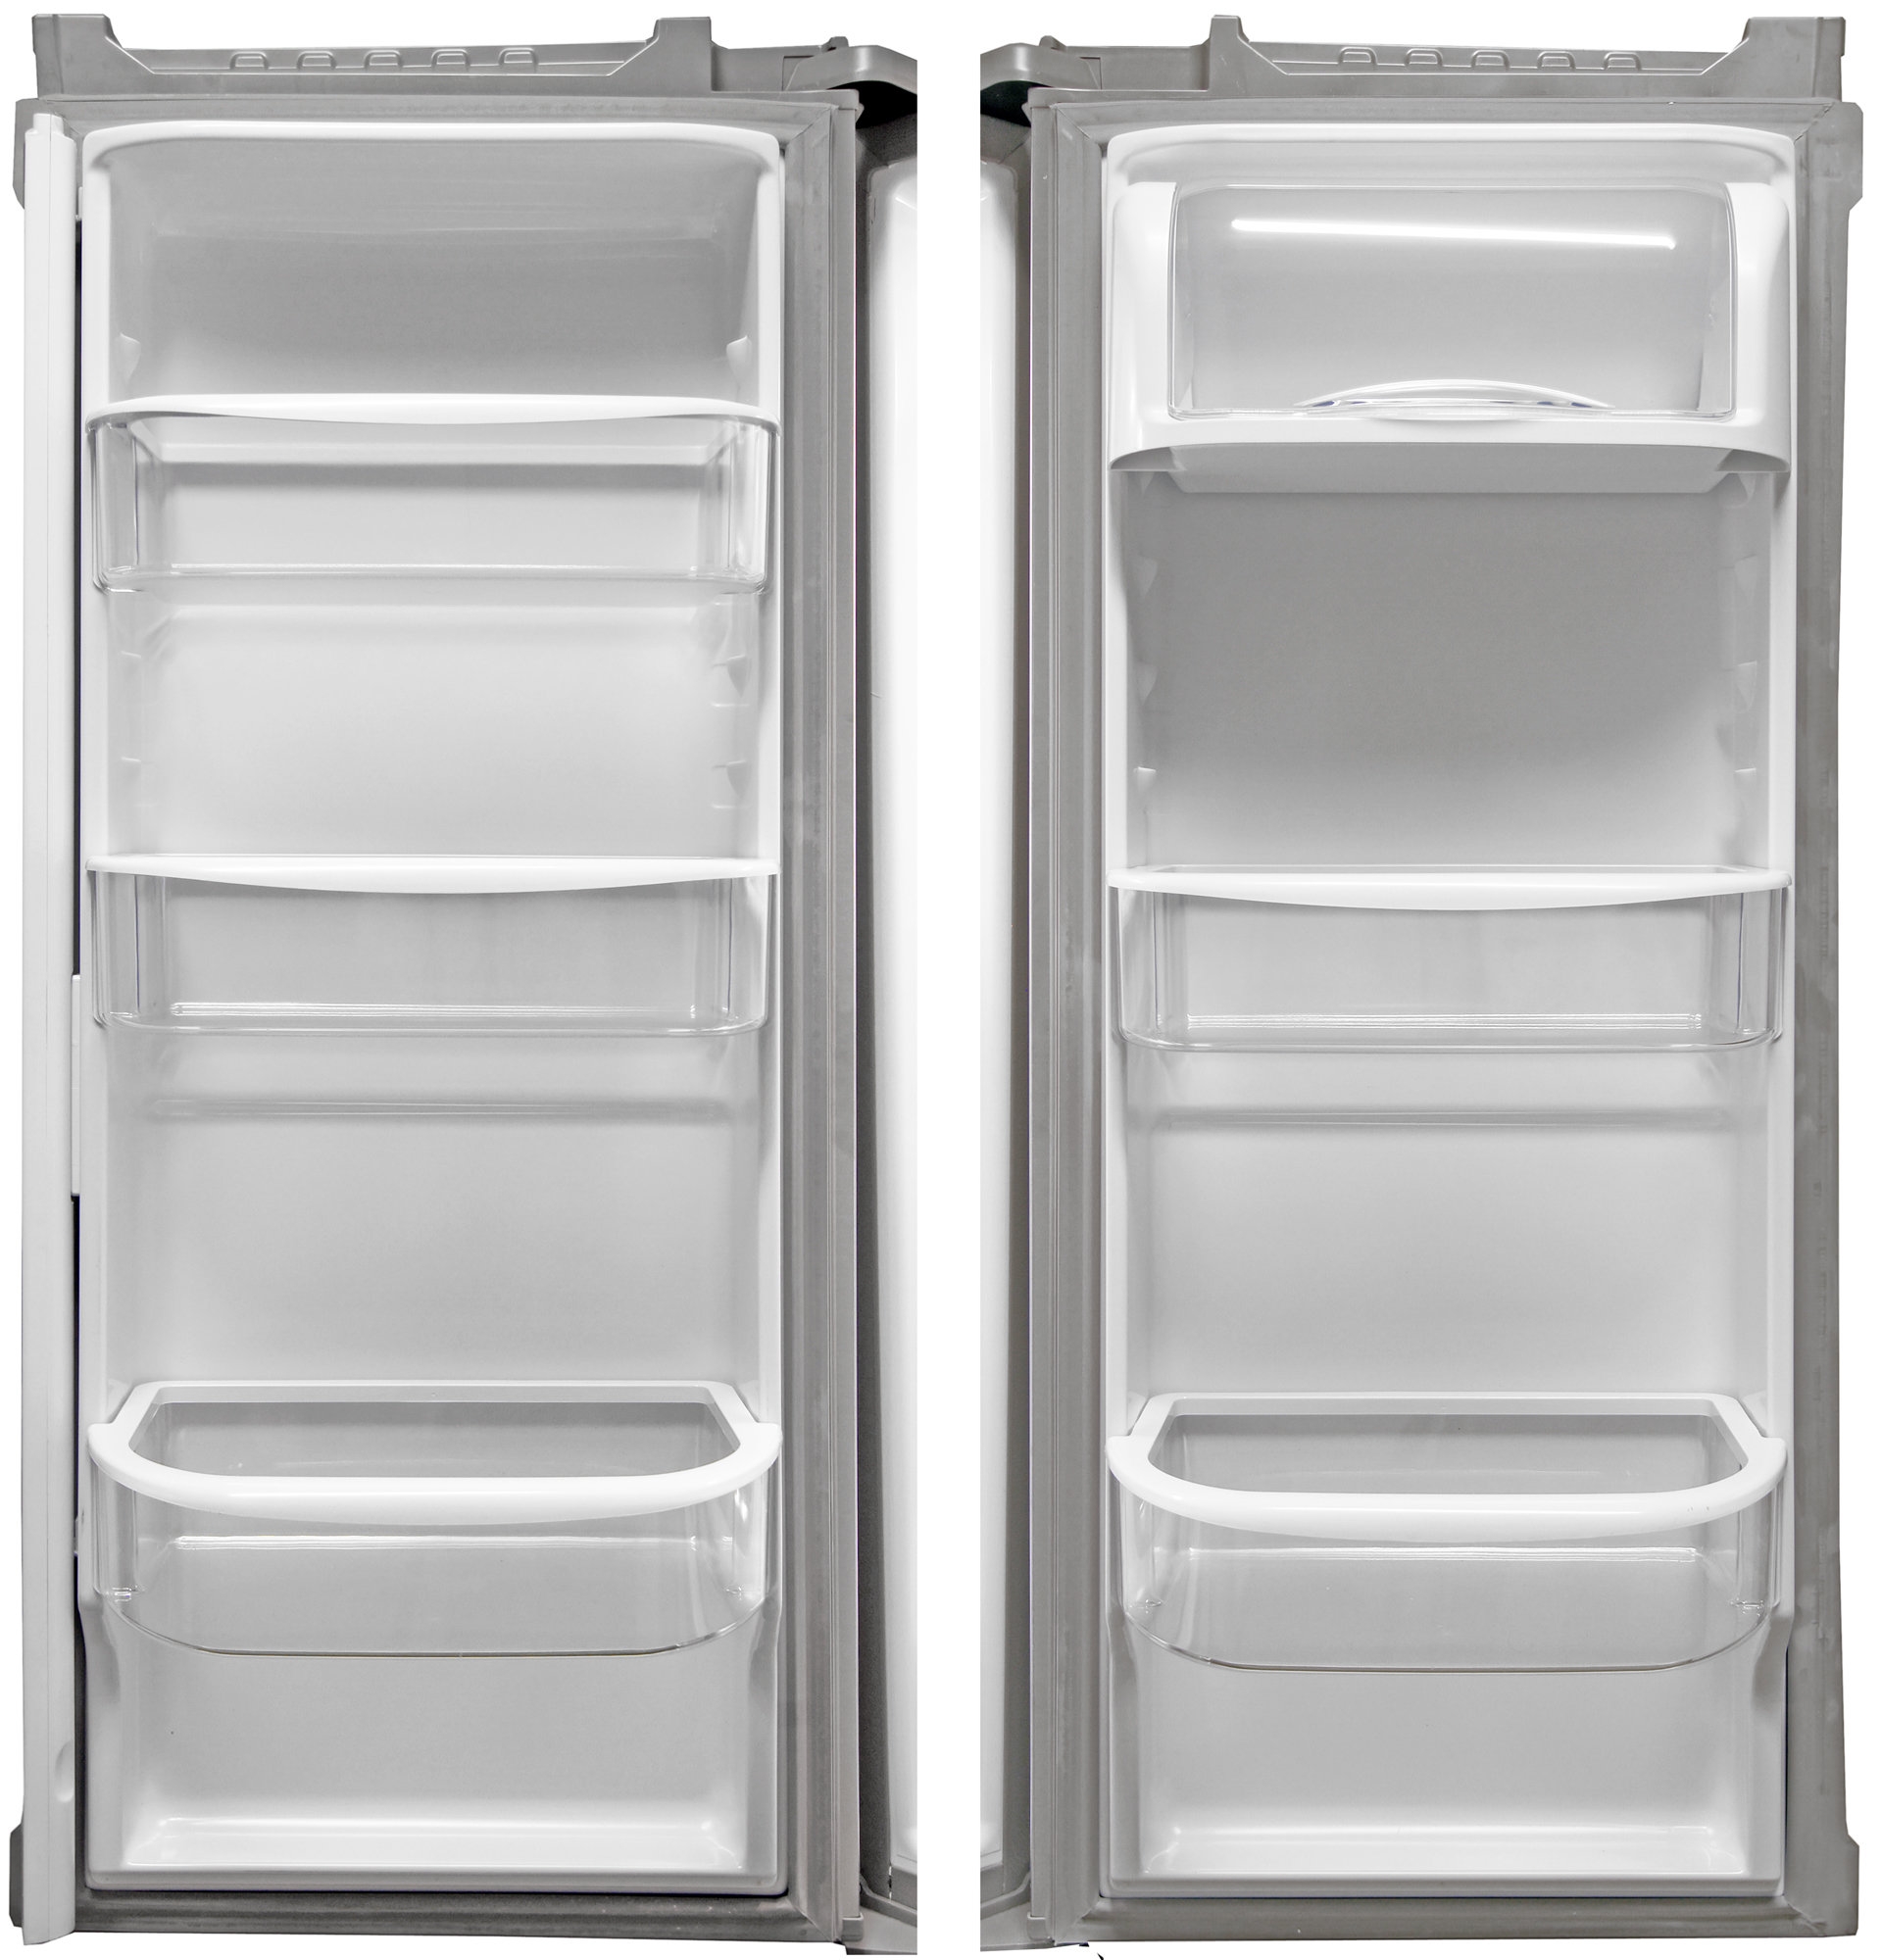 Of the Kenmore 72013's five adjustable door buckets, only the bottom two are deep enough for gallon jugs.